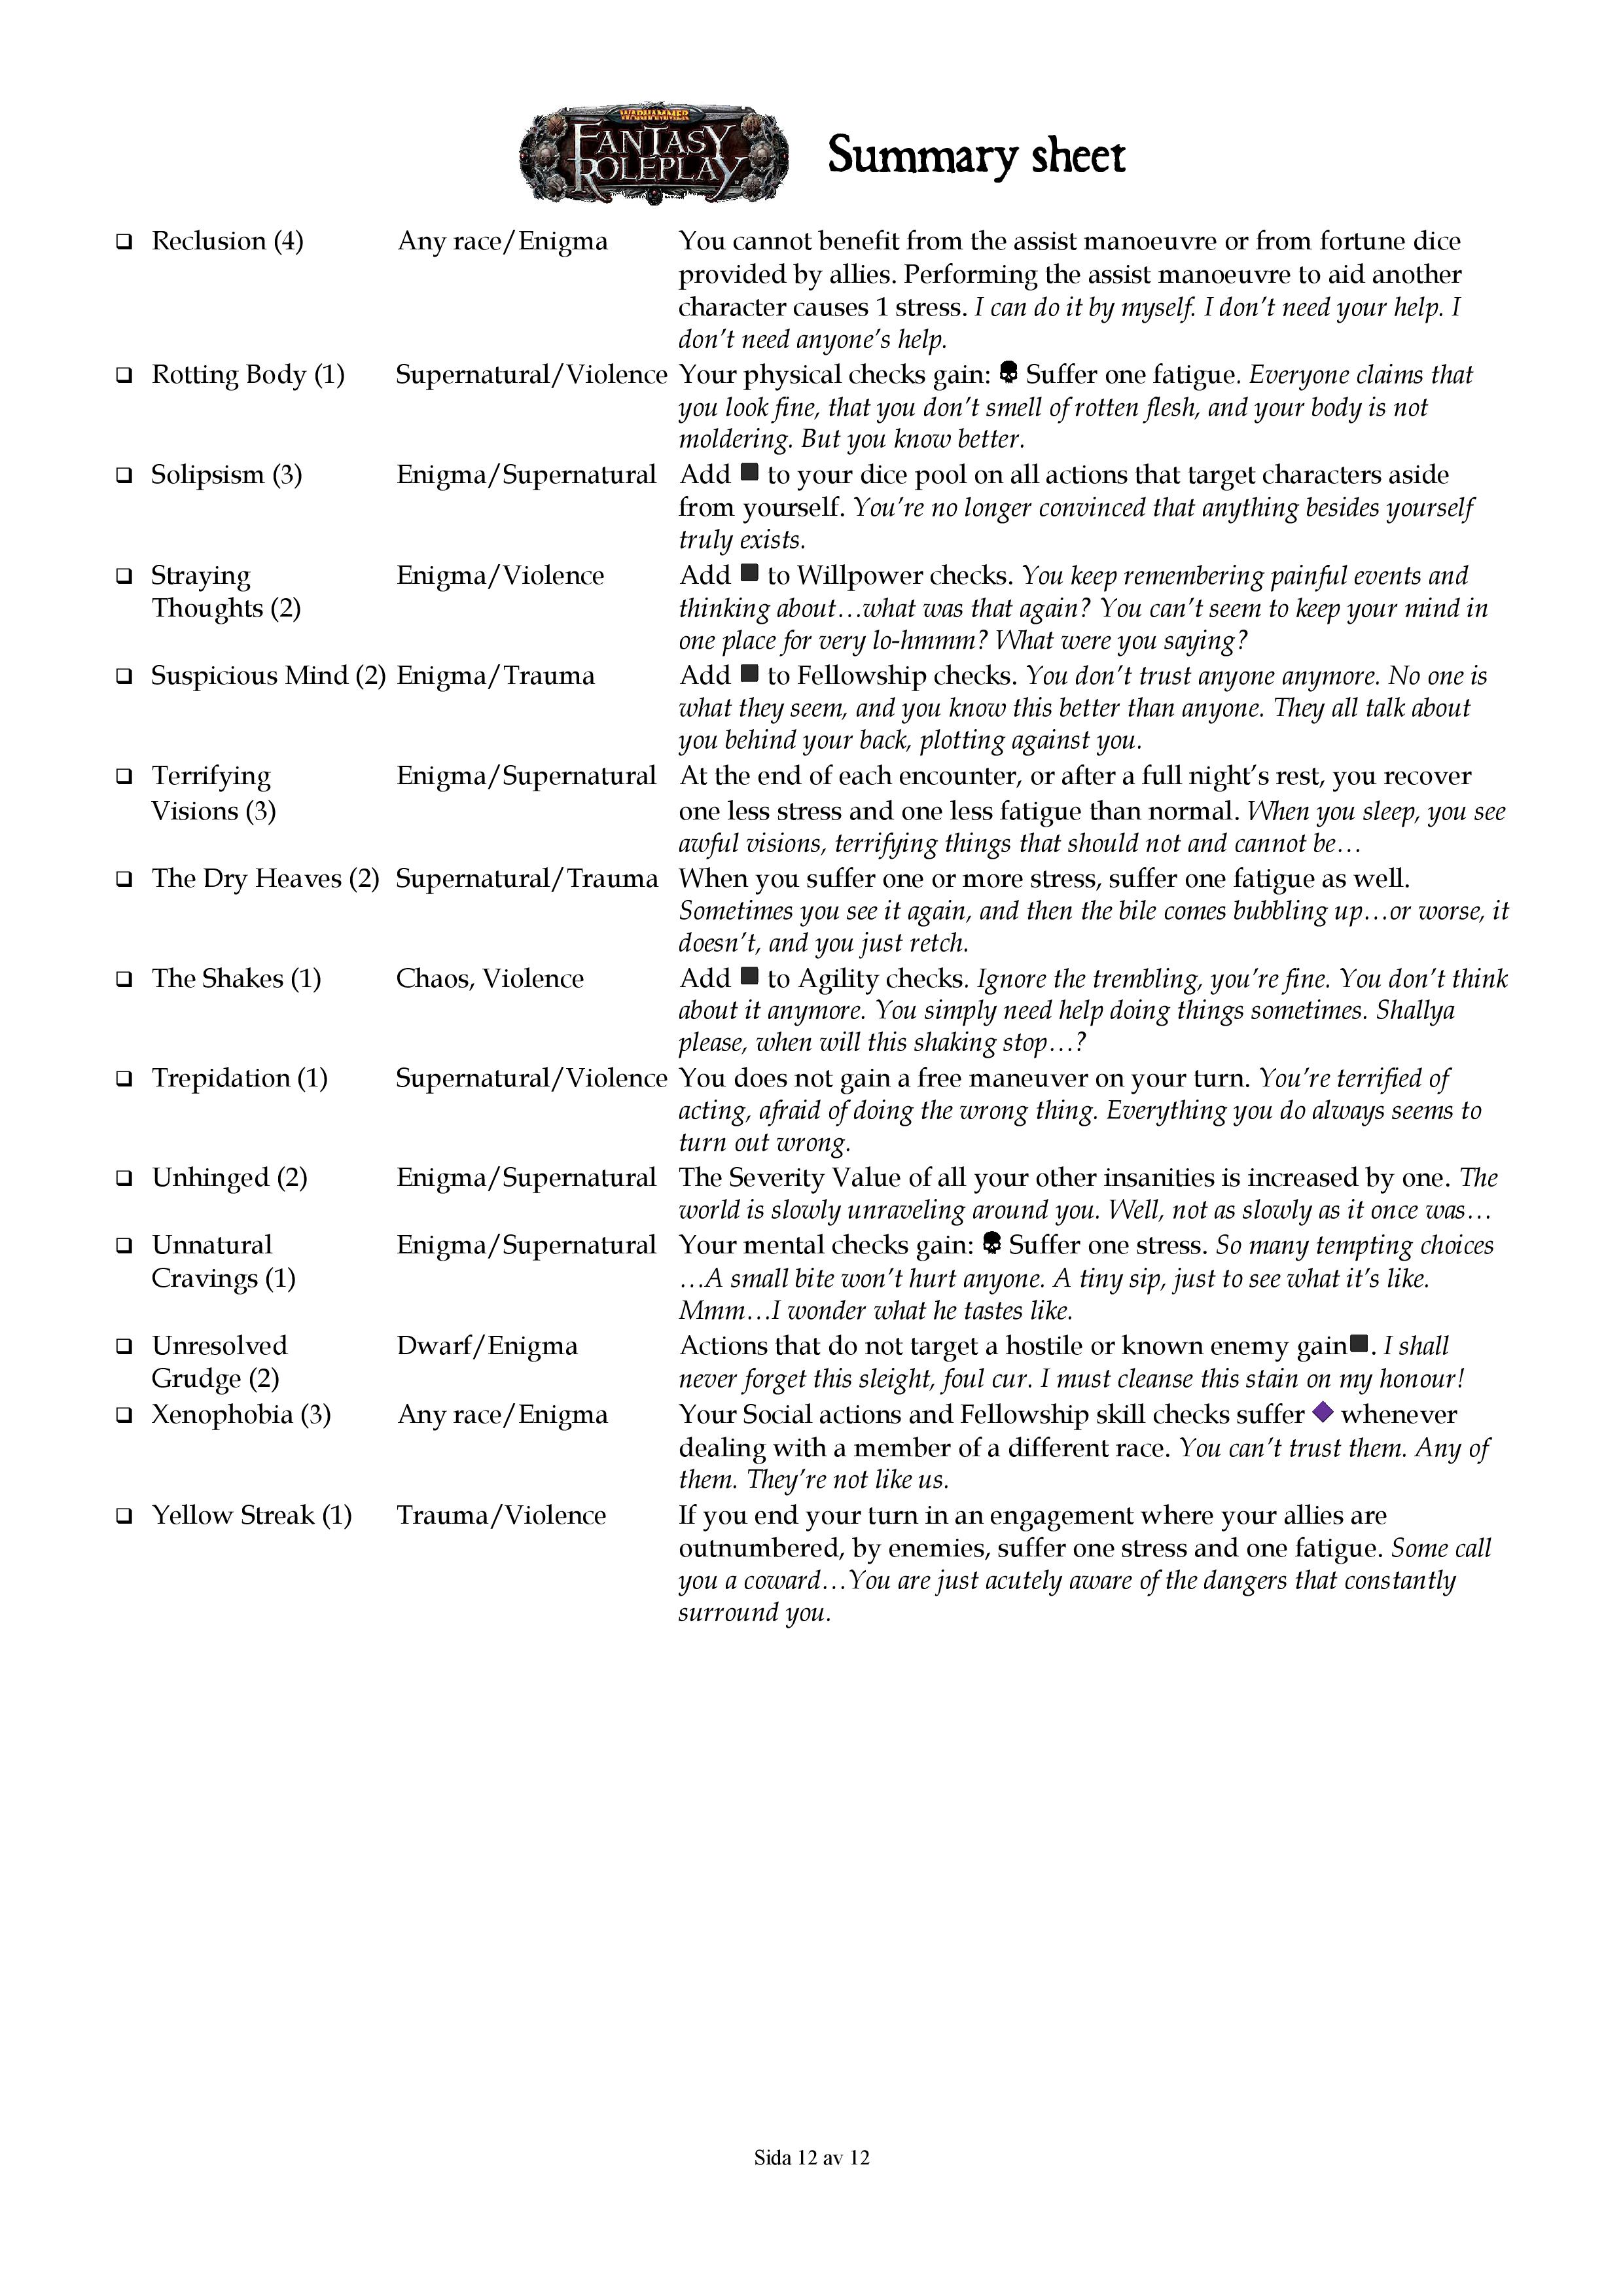 WFRP_3ed_Summary_Sheet_-_Players-page-012.jpg